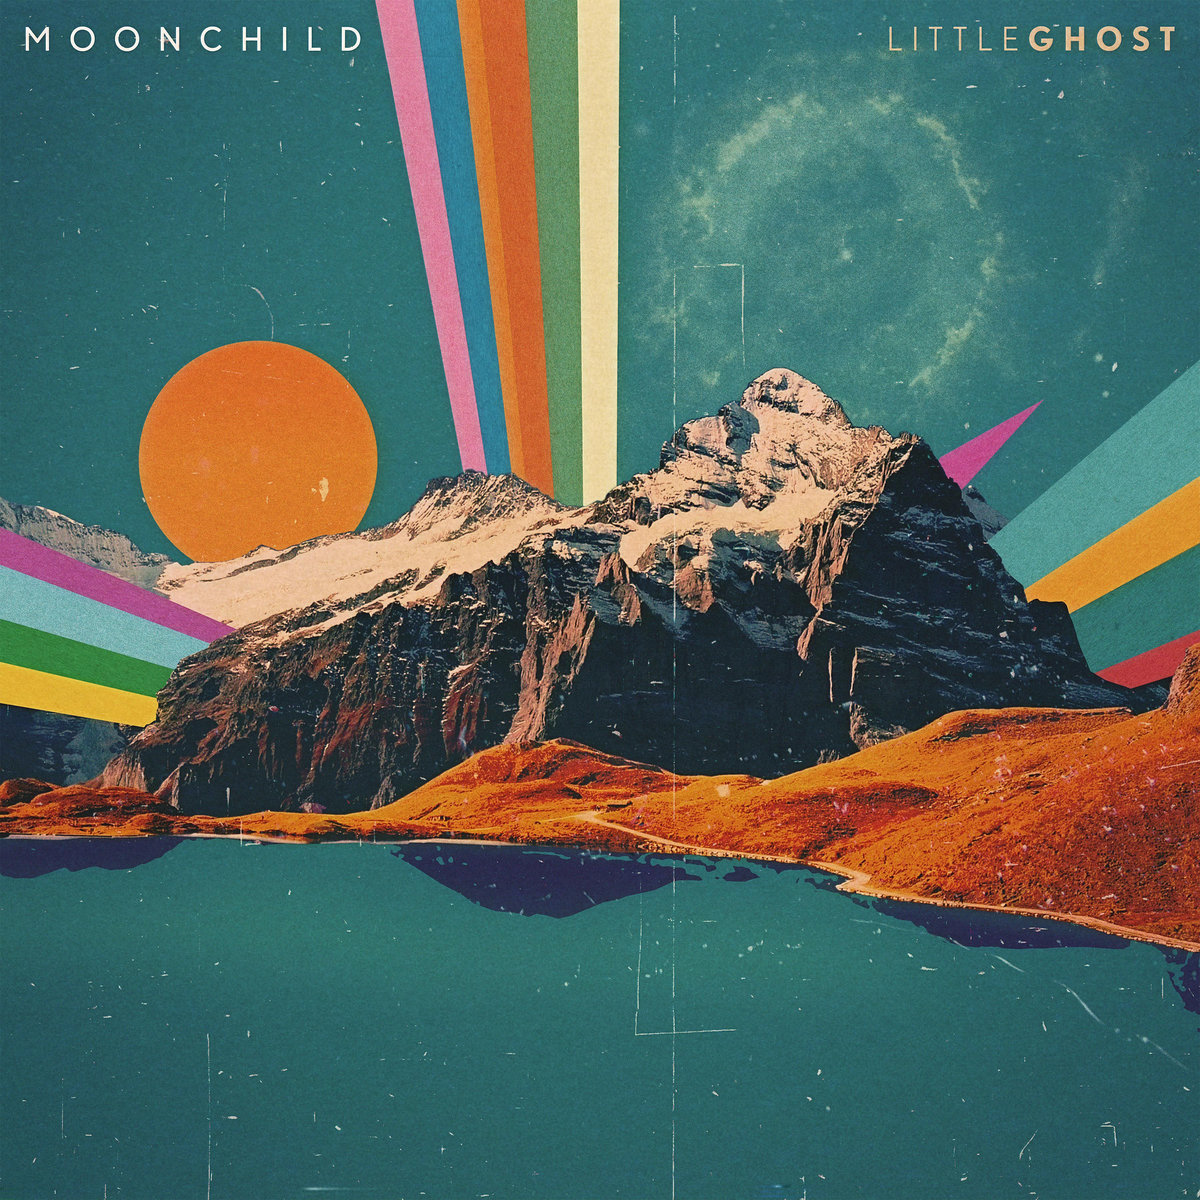 Moonchild- Little Ghost